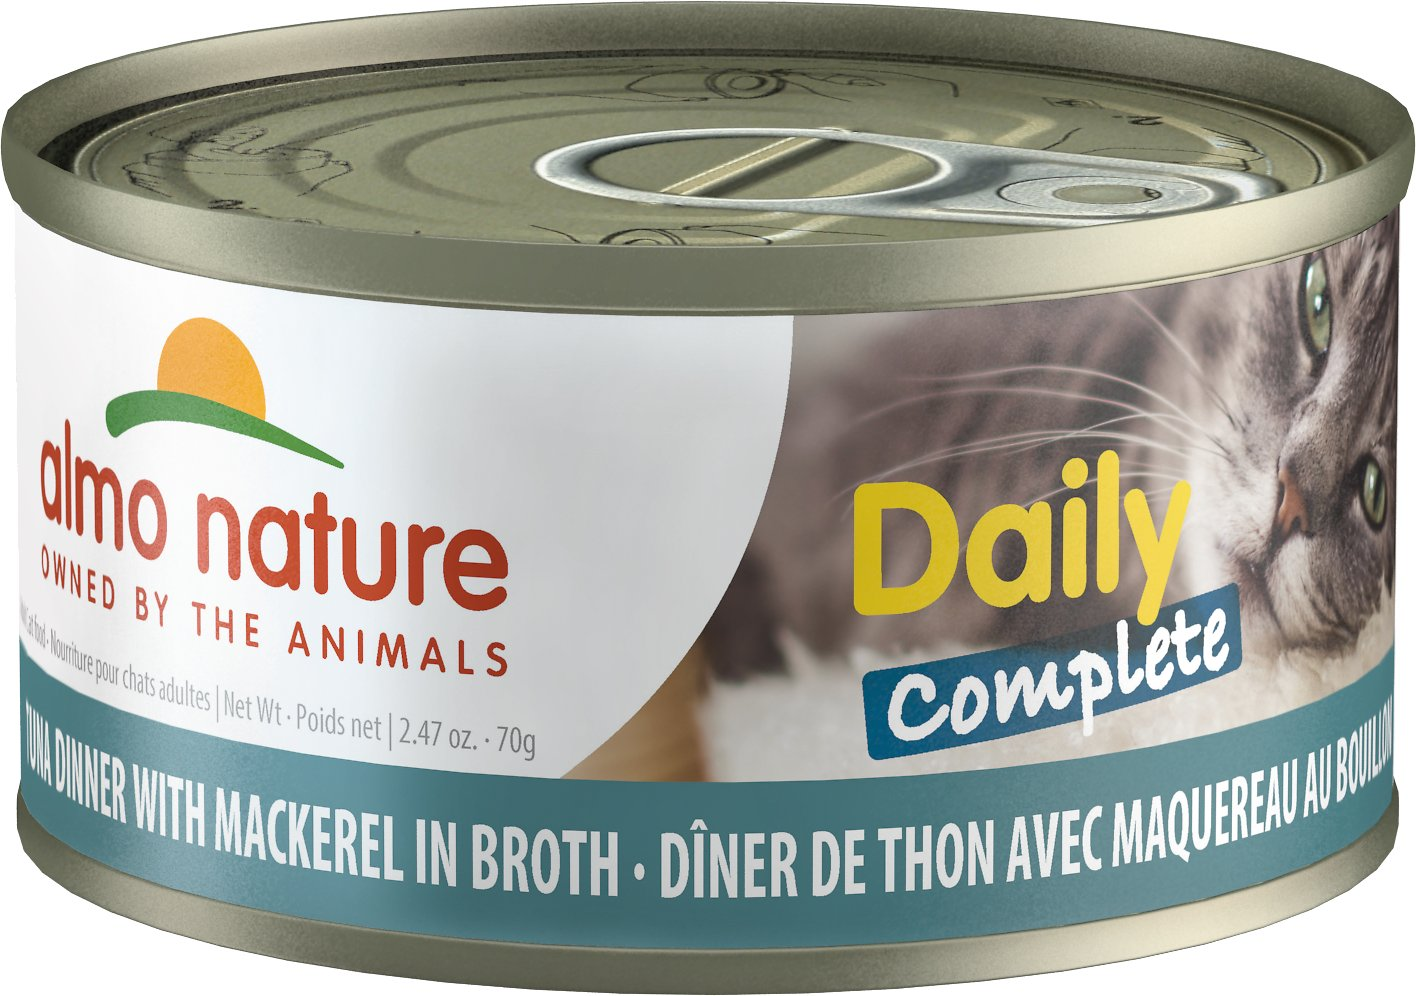 Almo Nature Daily Complete Tuna Dinner with Mackerel in Broth Grain-Free Wet Cat Food, 2.47-oz